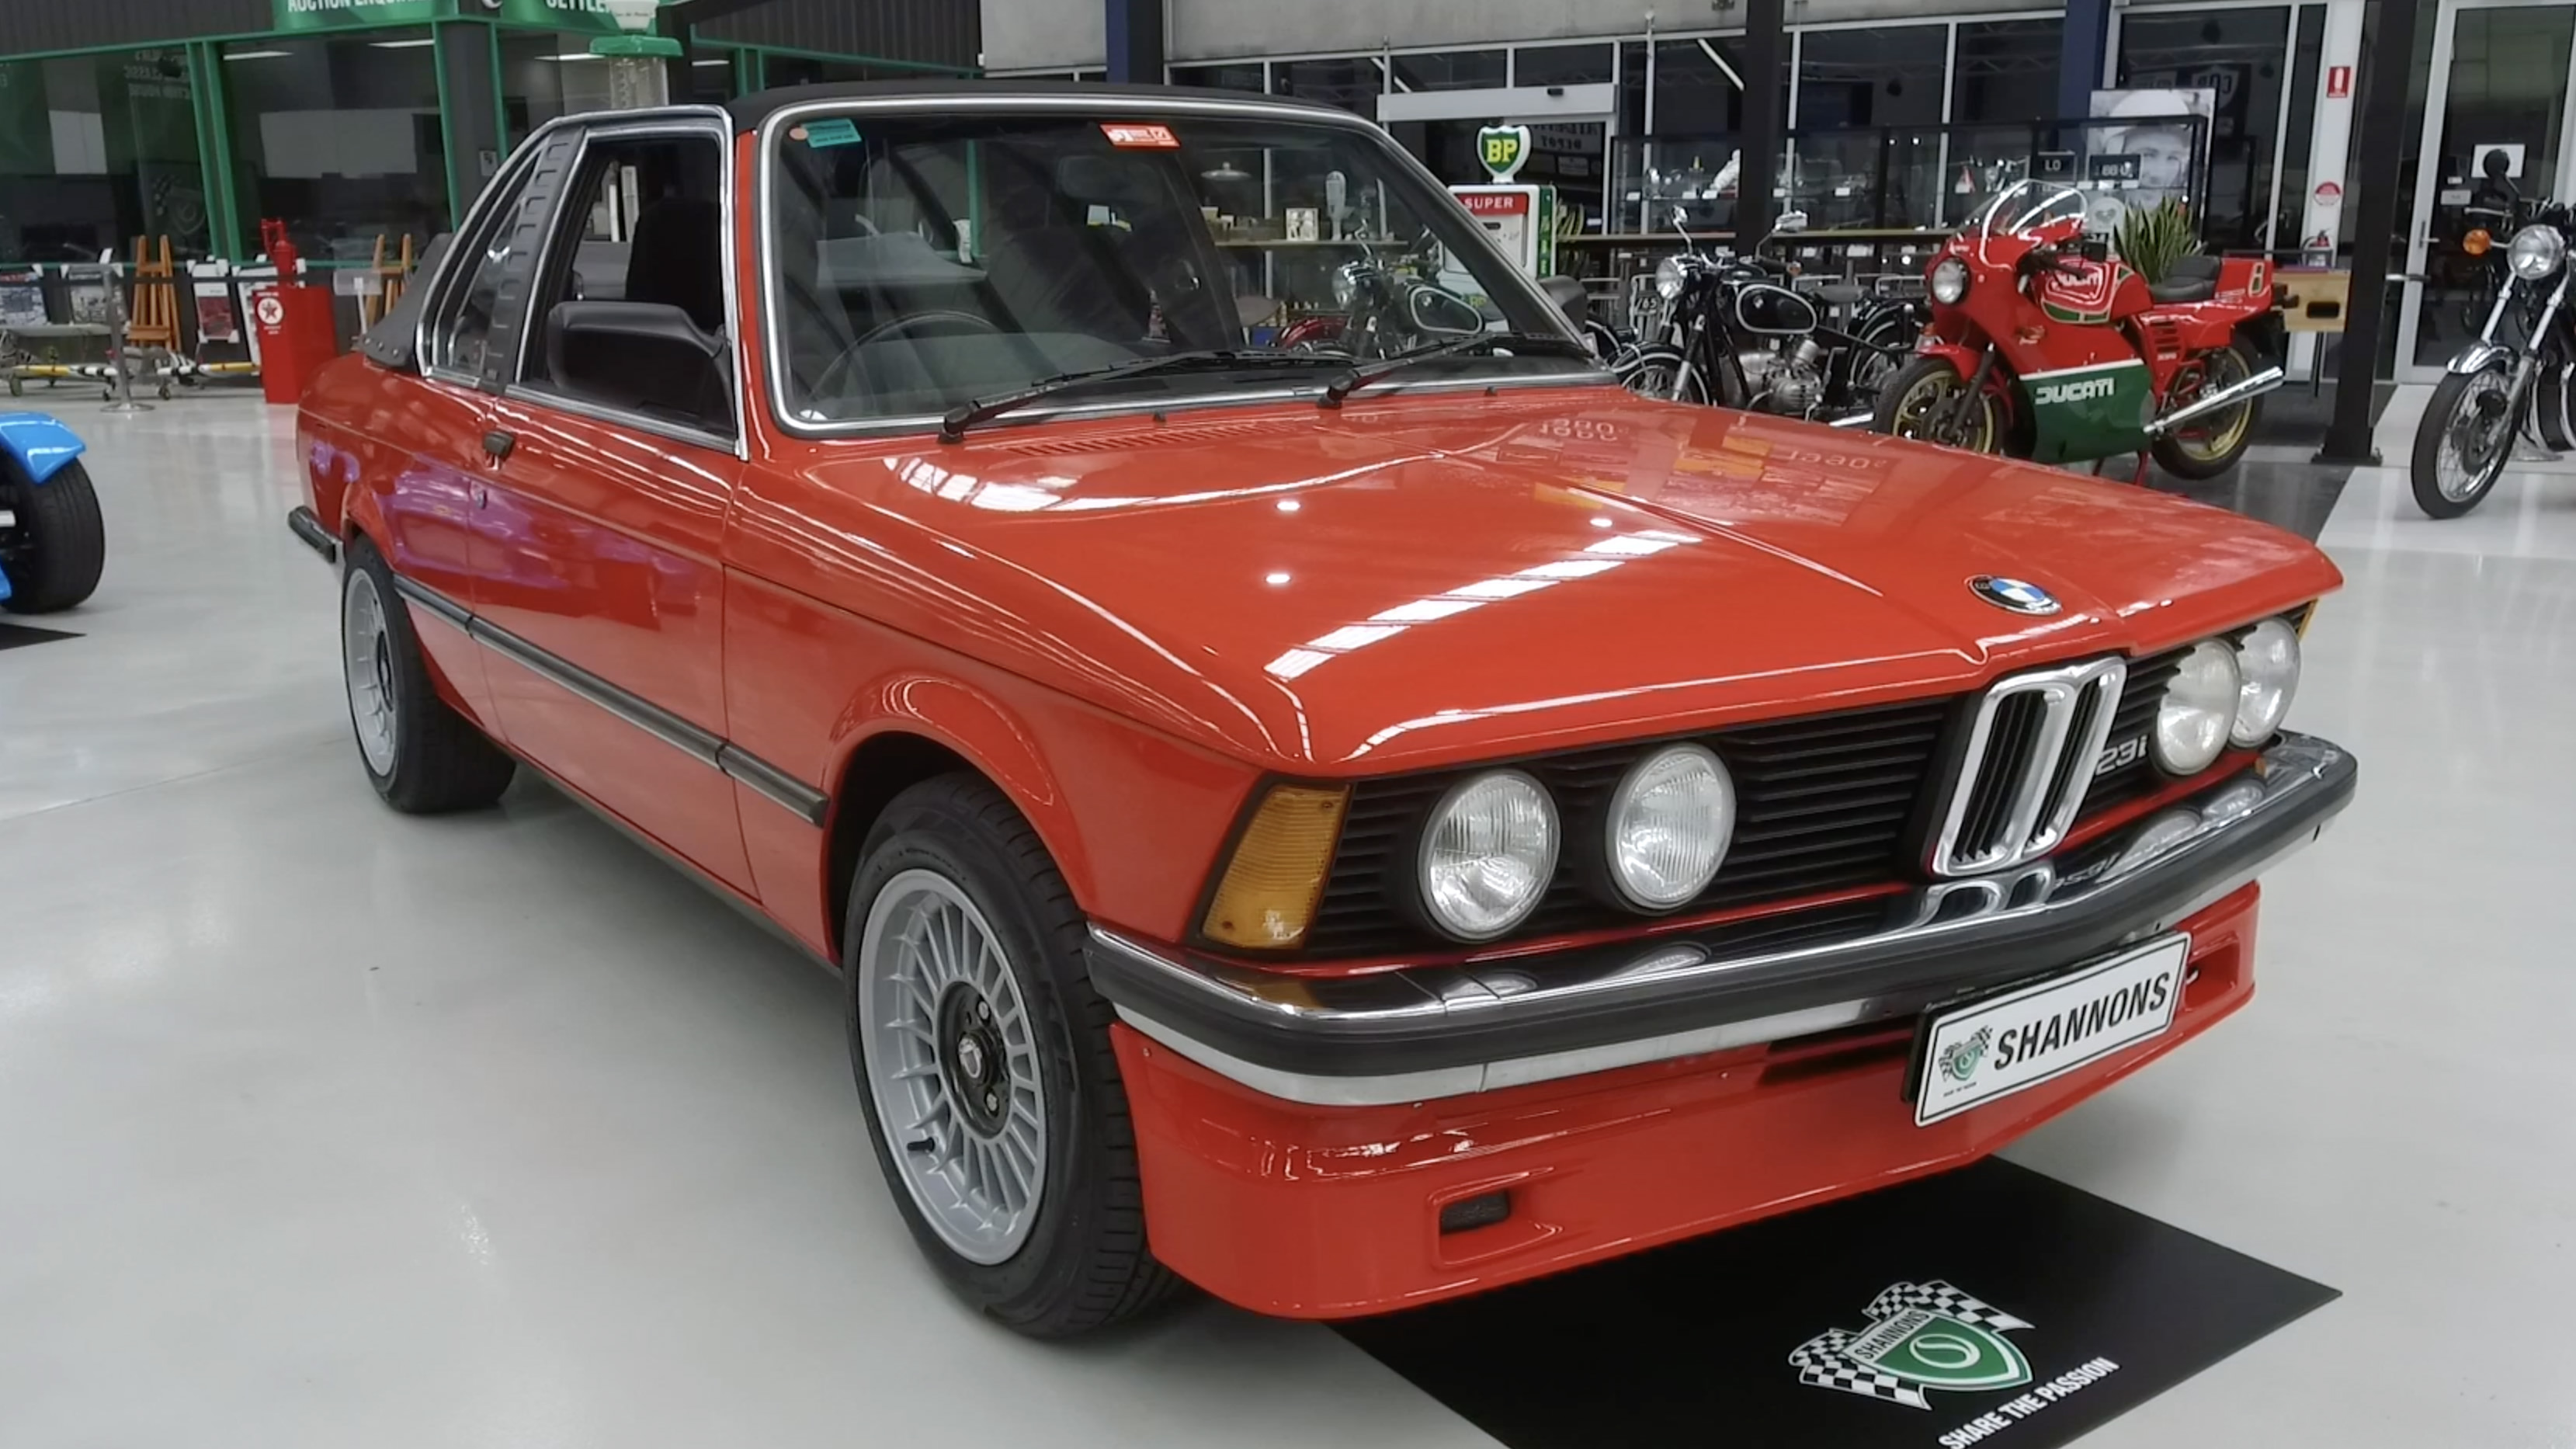 1982 BMW 323i 'Baur' Convertible - 2020 Shannons Spring Timed Online Auction